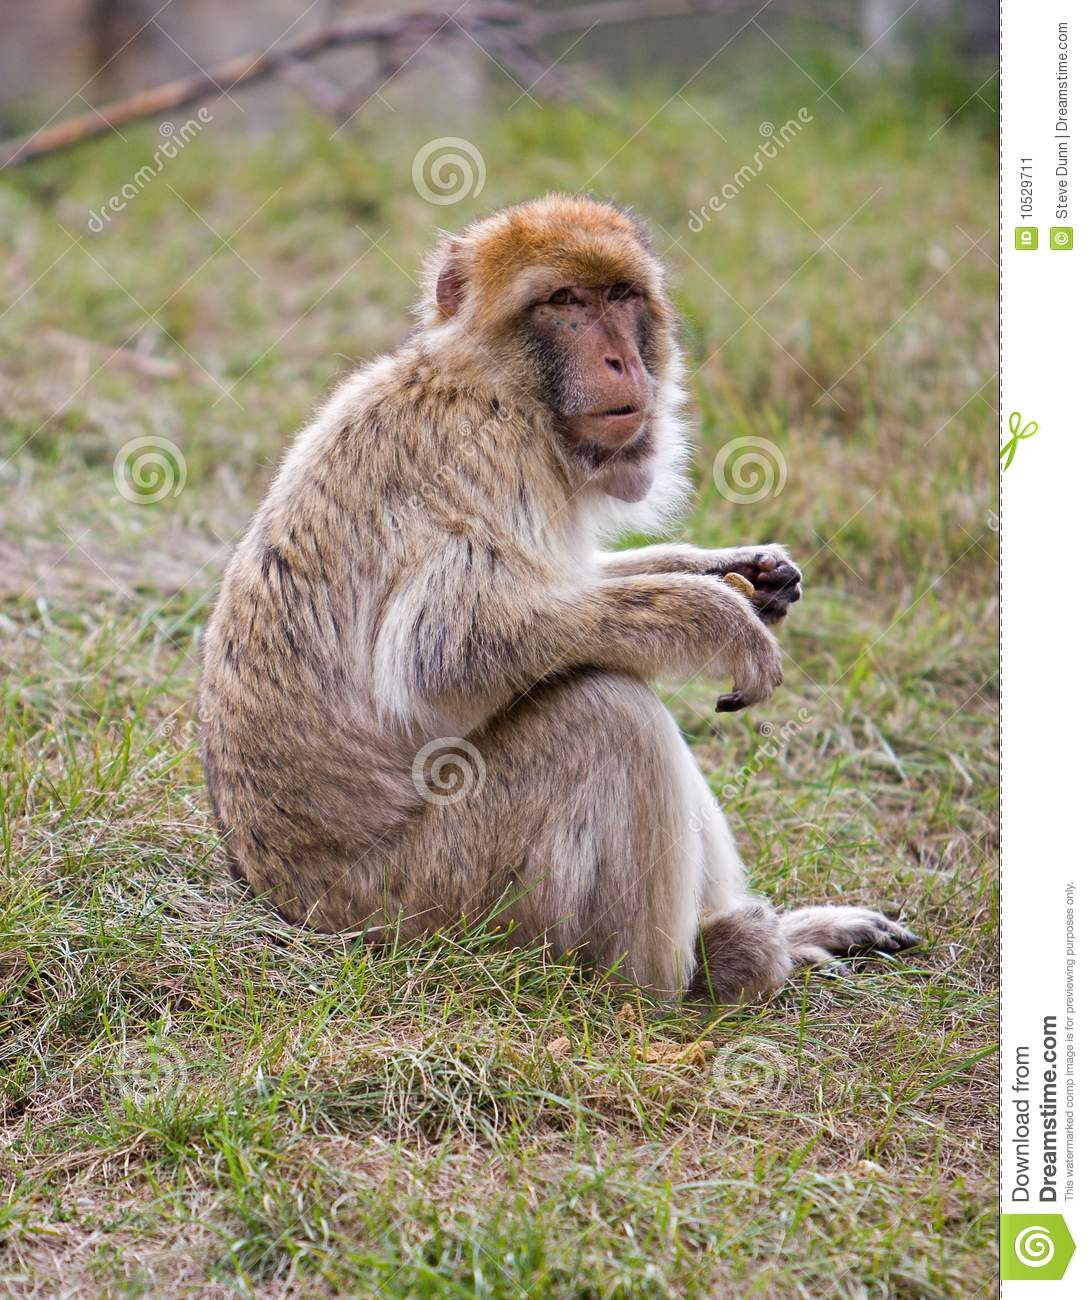 Barbary Ape Sitting On Grass Stock Image.